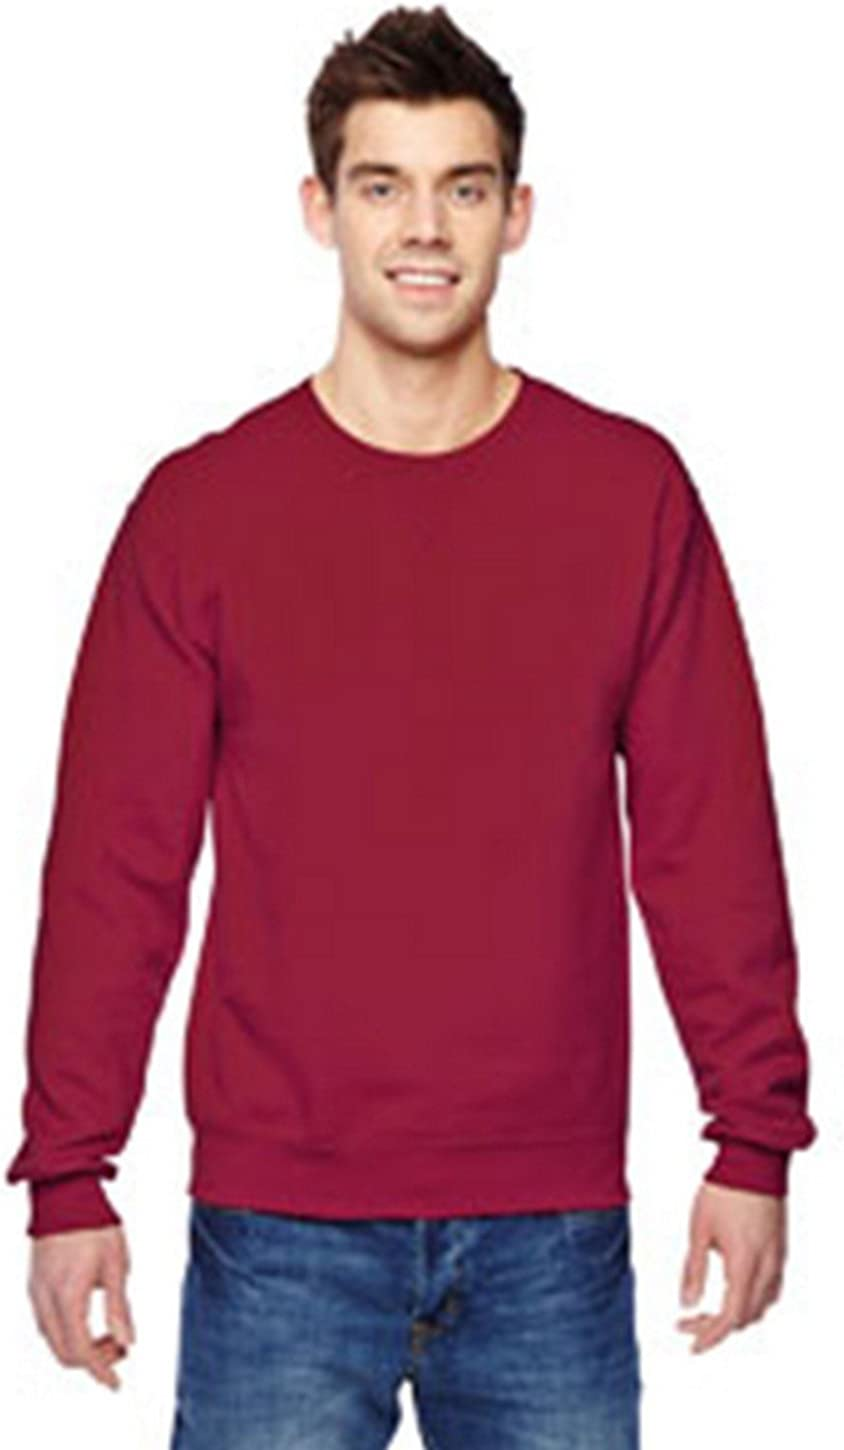 Fruit of the Loom SF72R Sofspun Sweatshirt - Cardinal - L